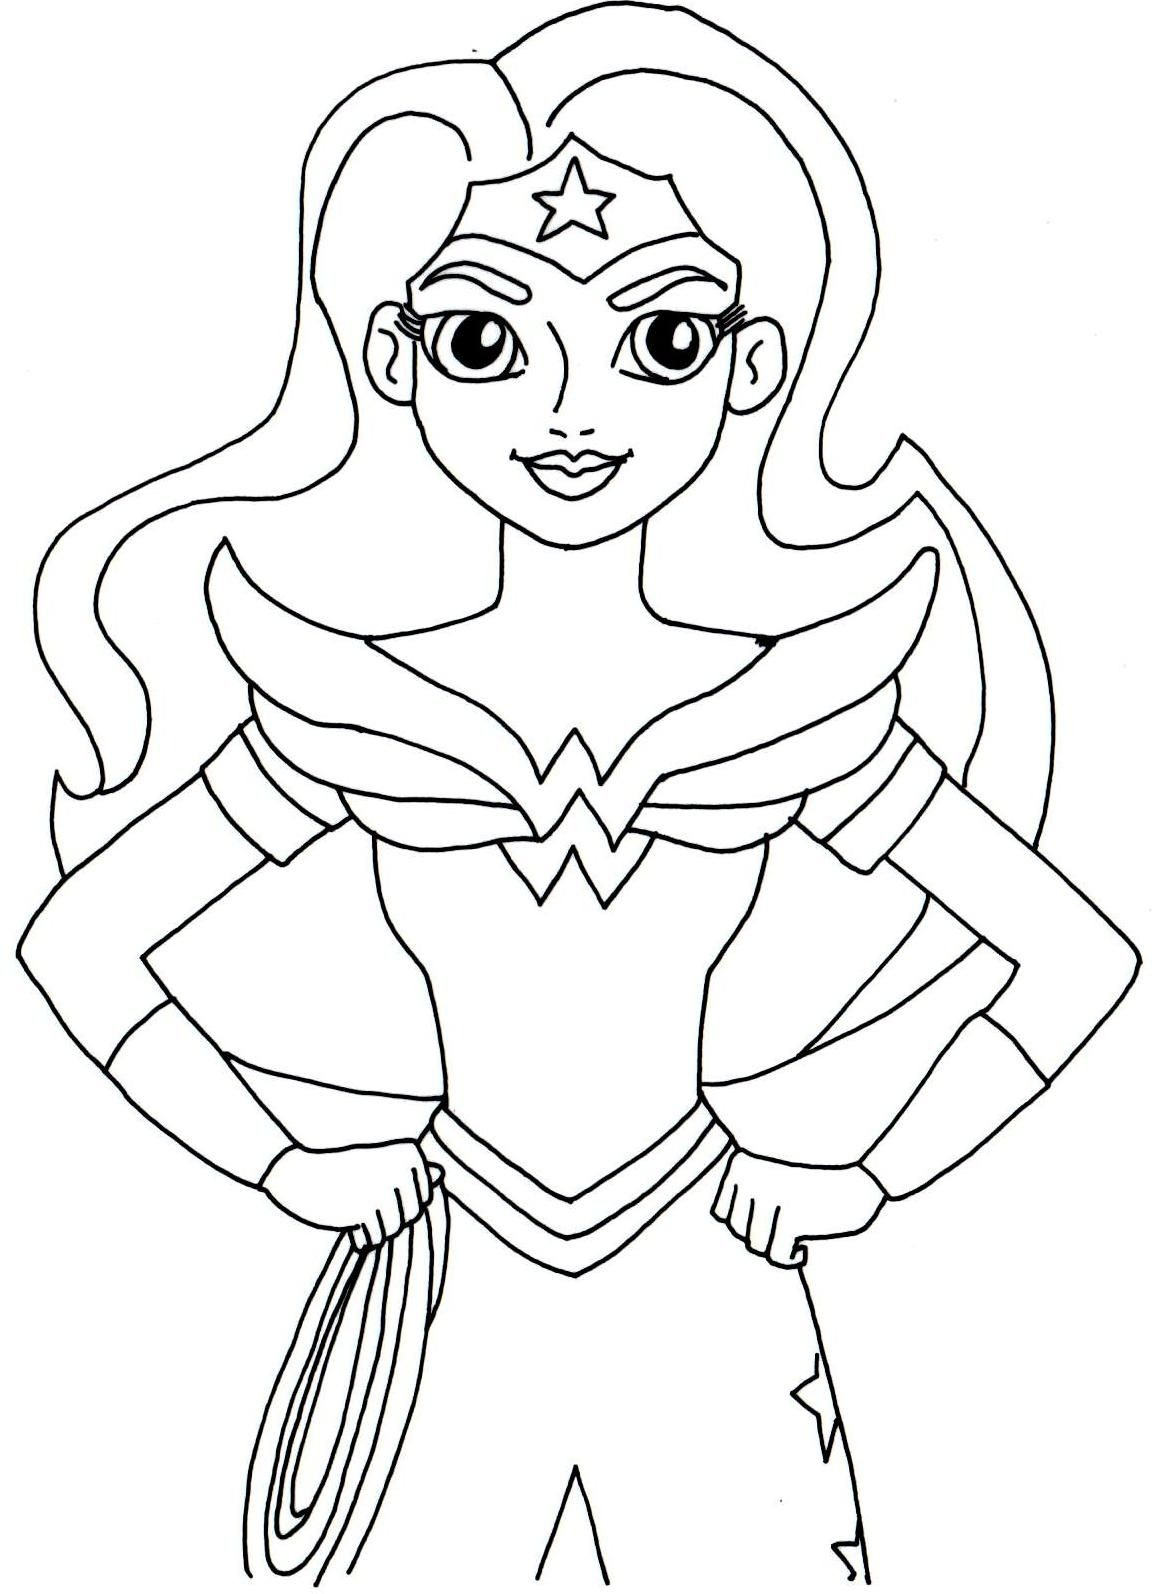 Coloring Pages Women  Download 5l - To print for your project